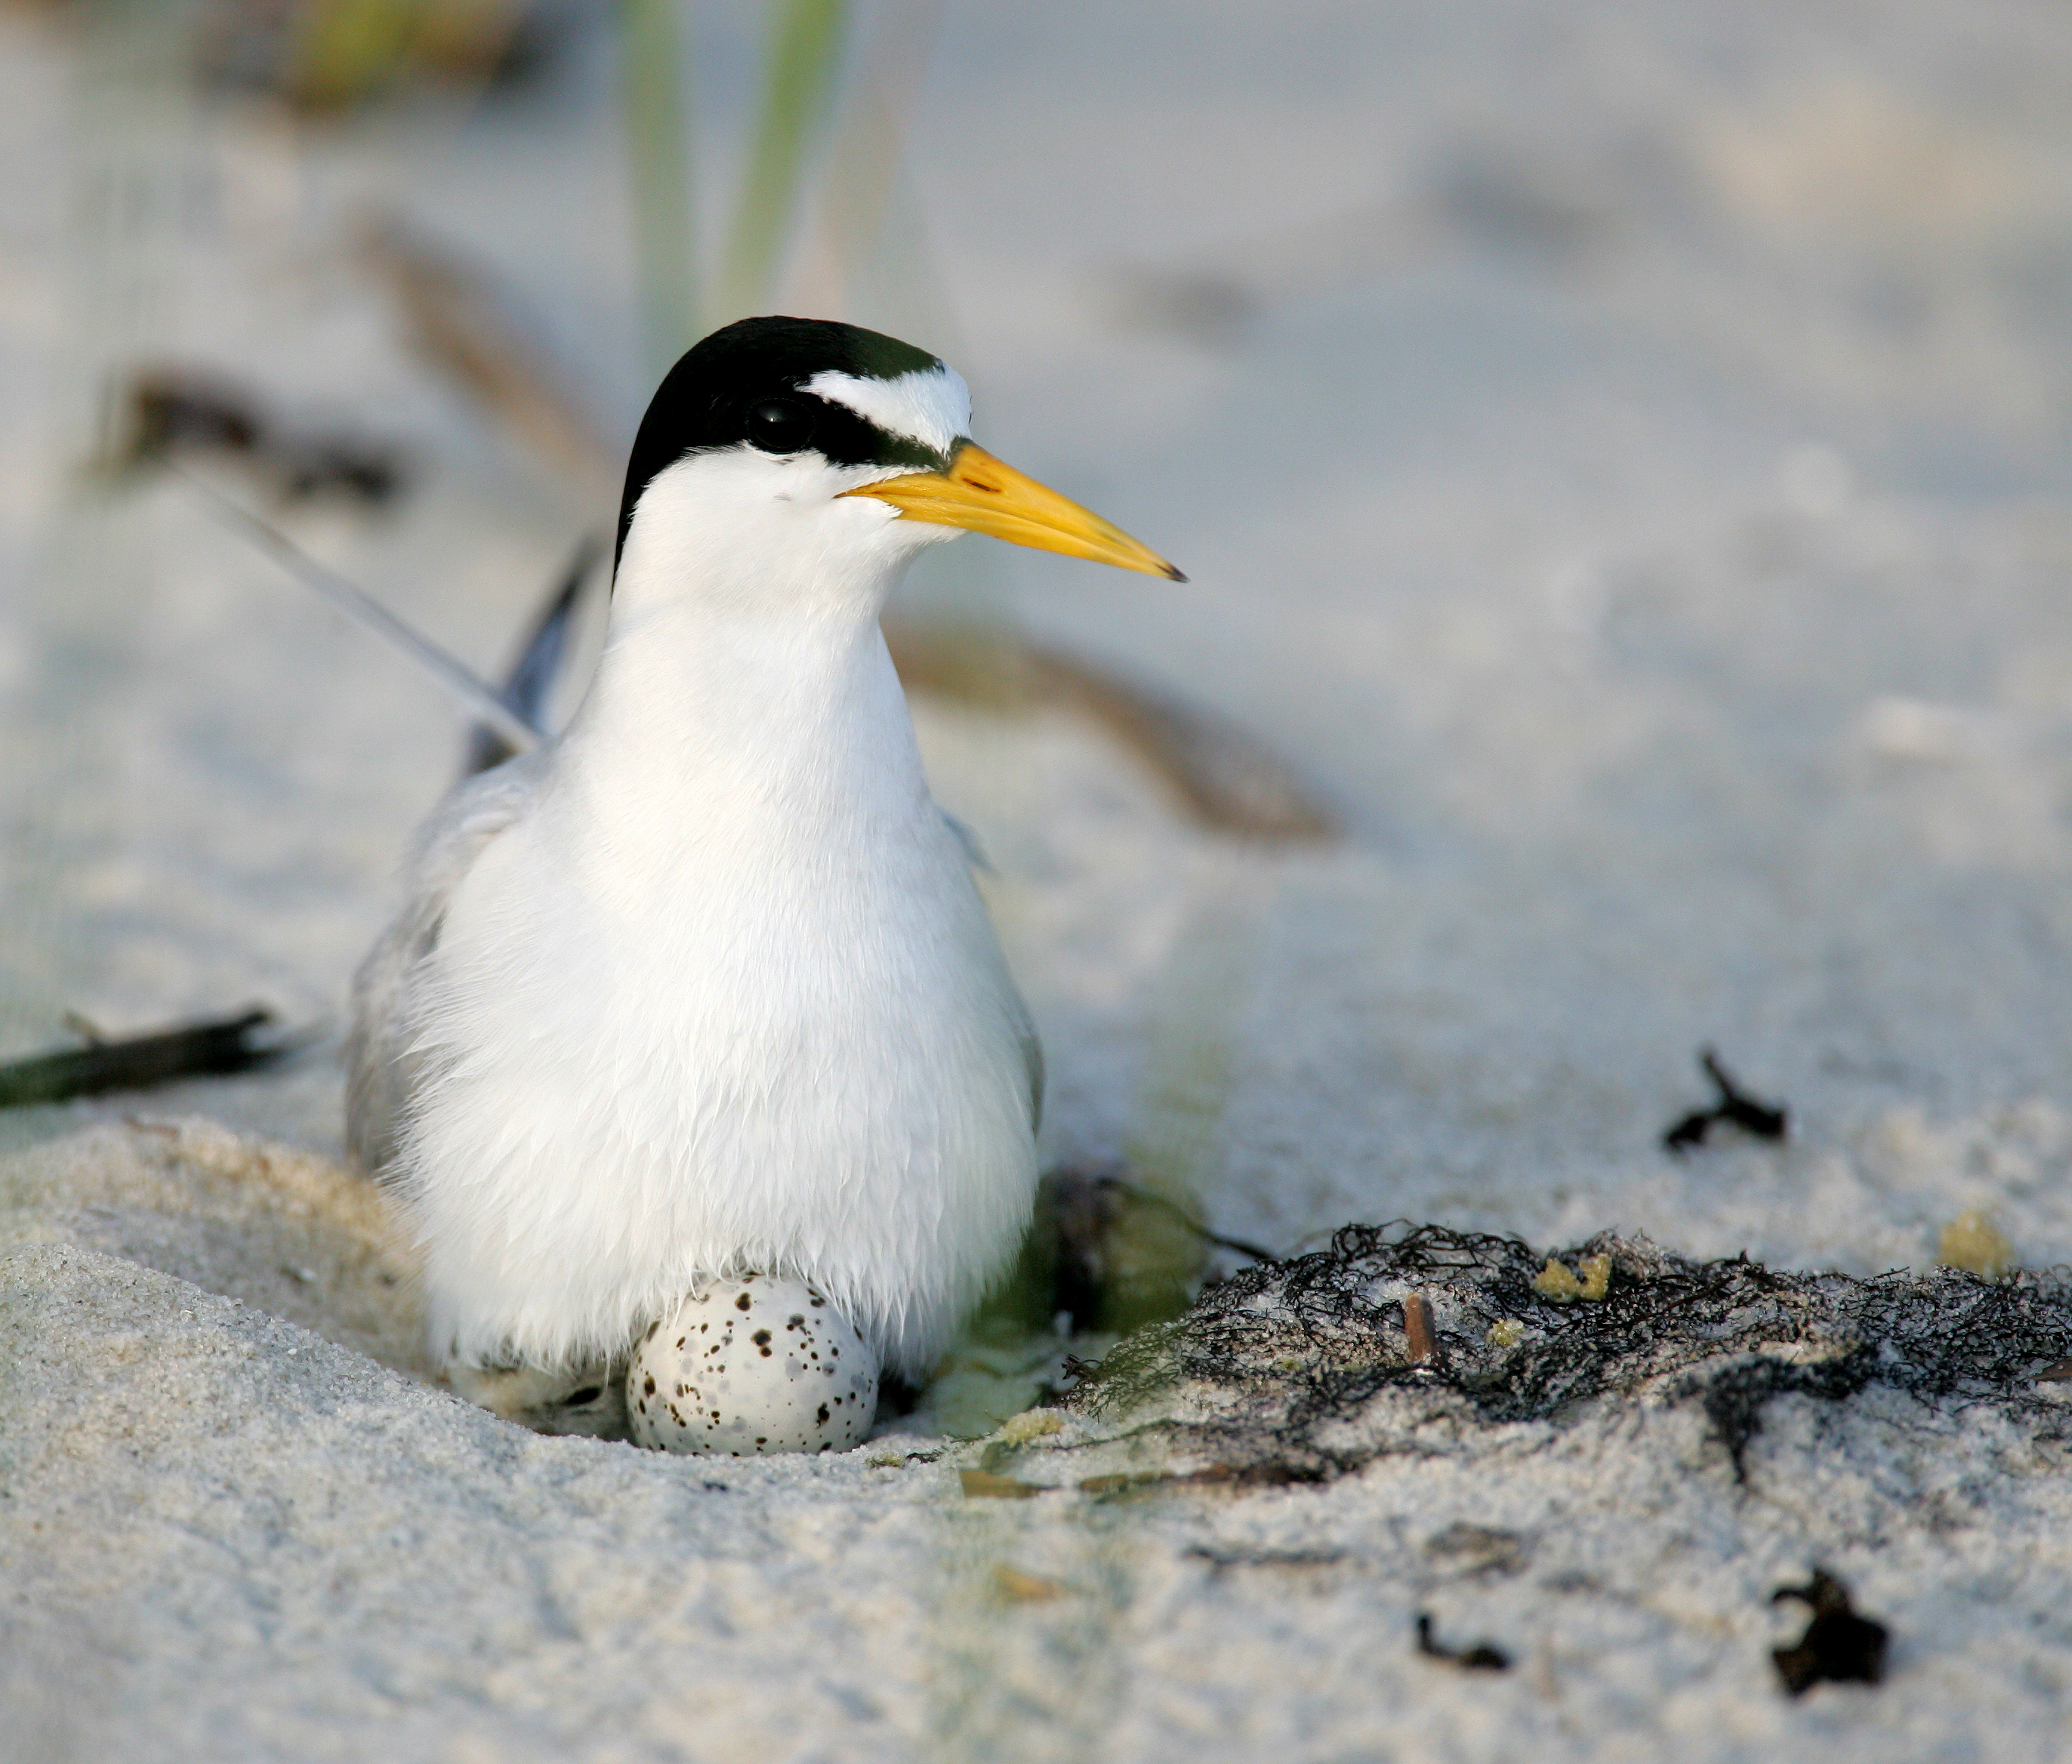 Least tern bird sitting on eggs